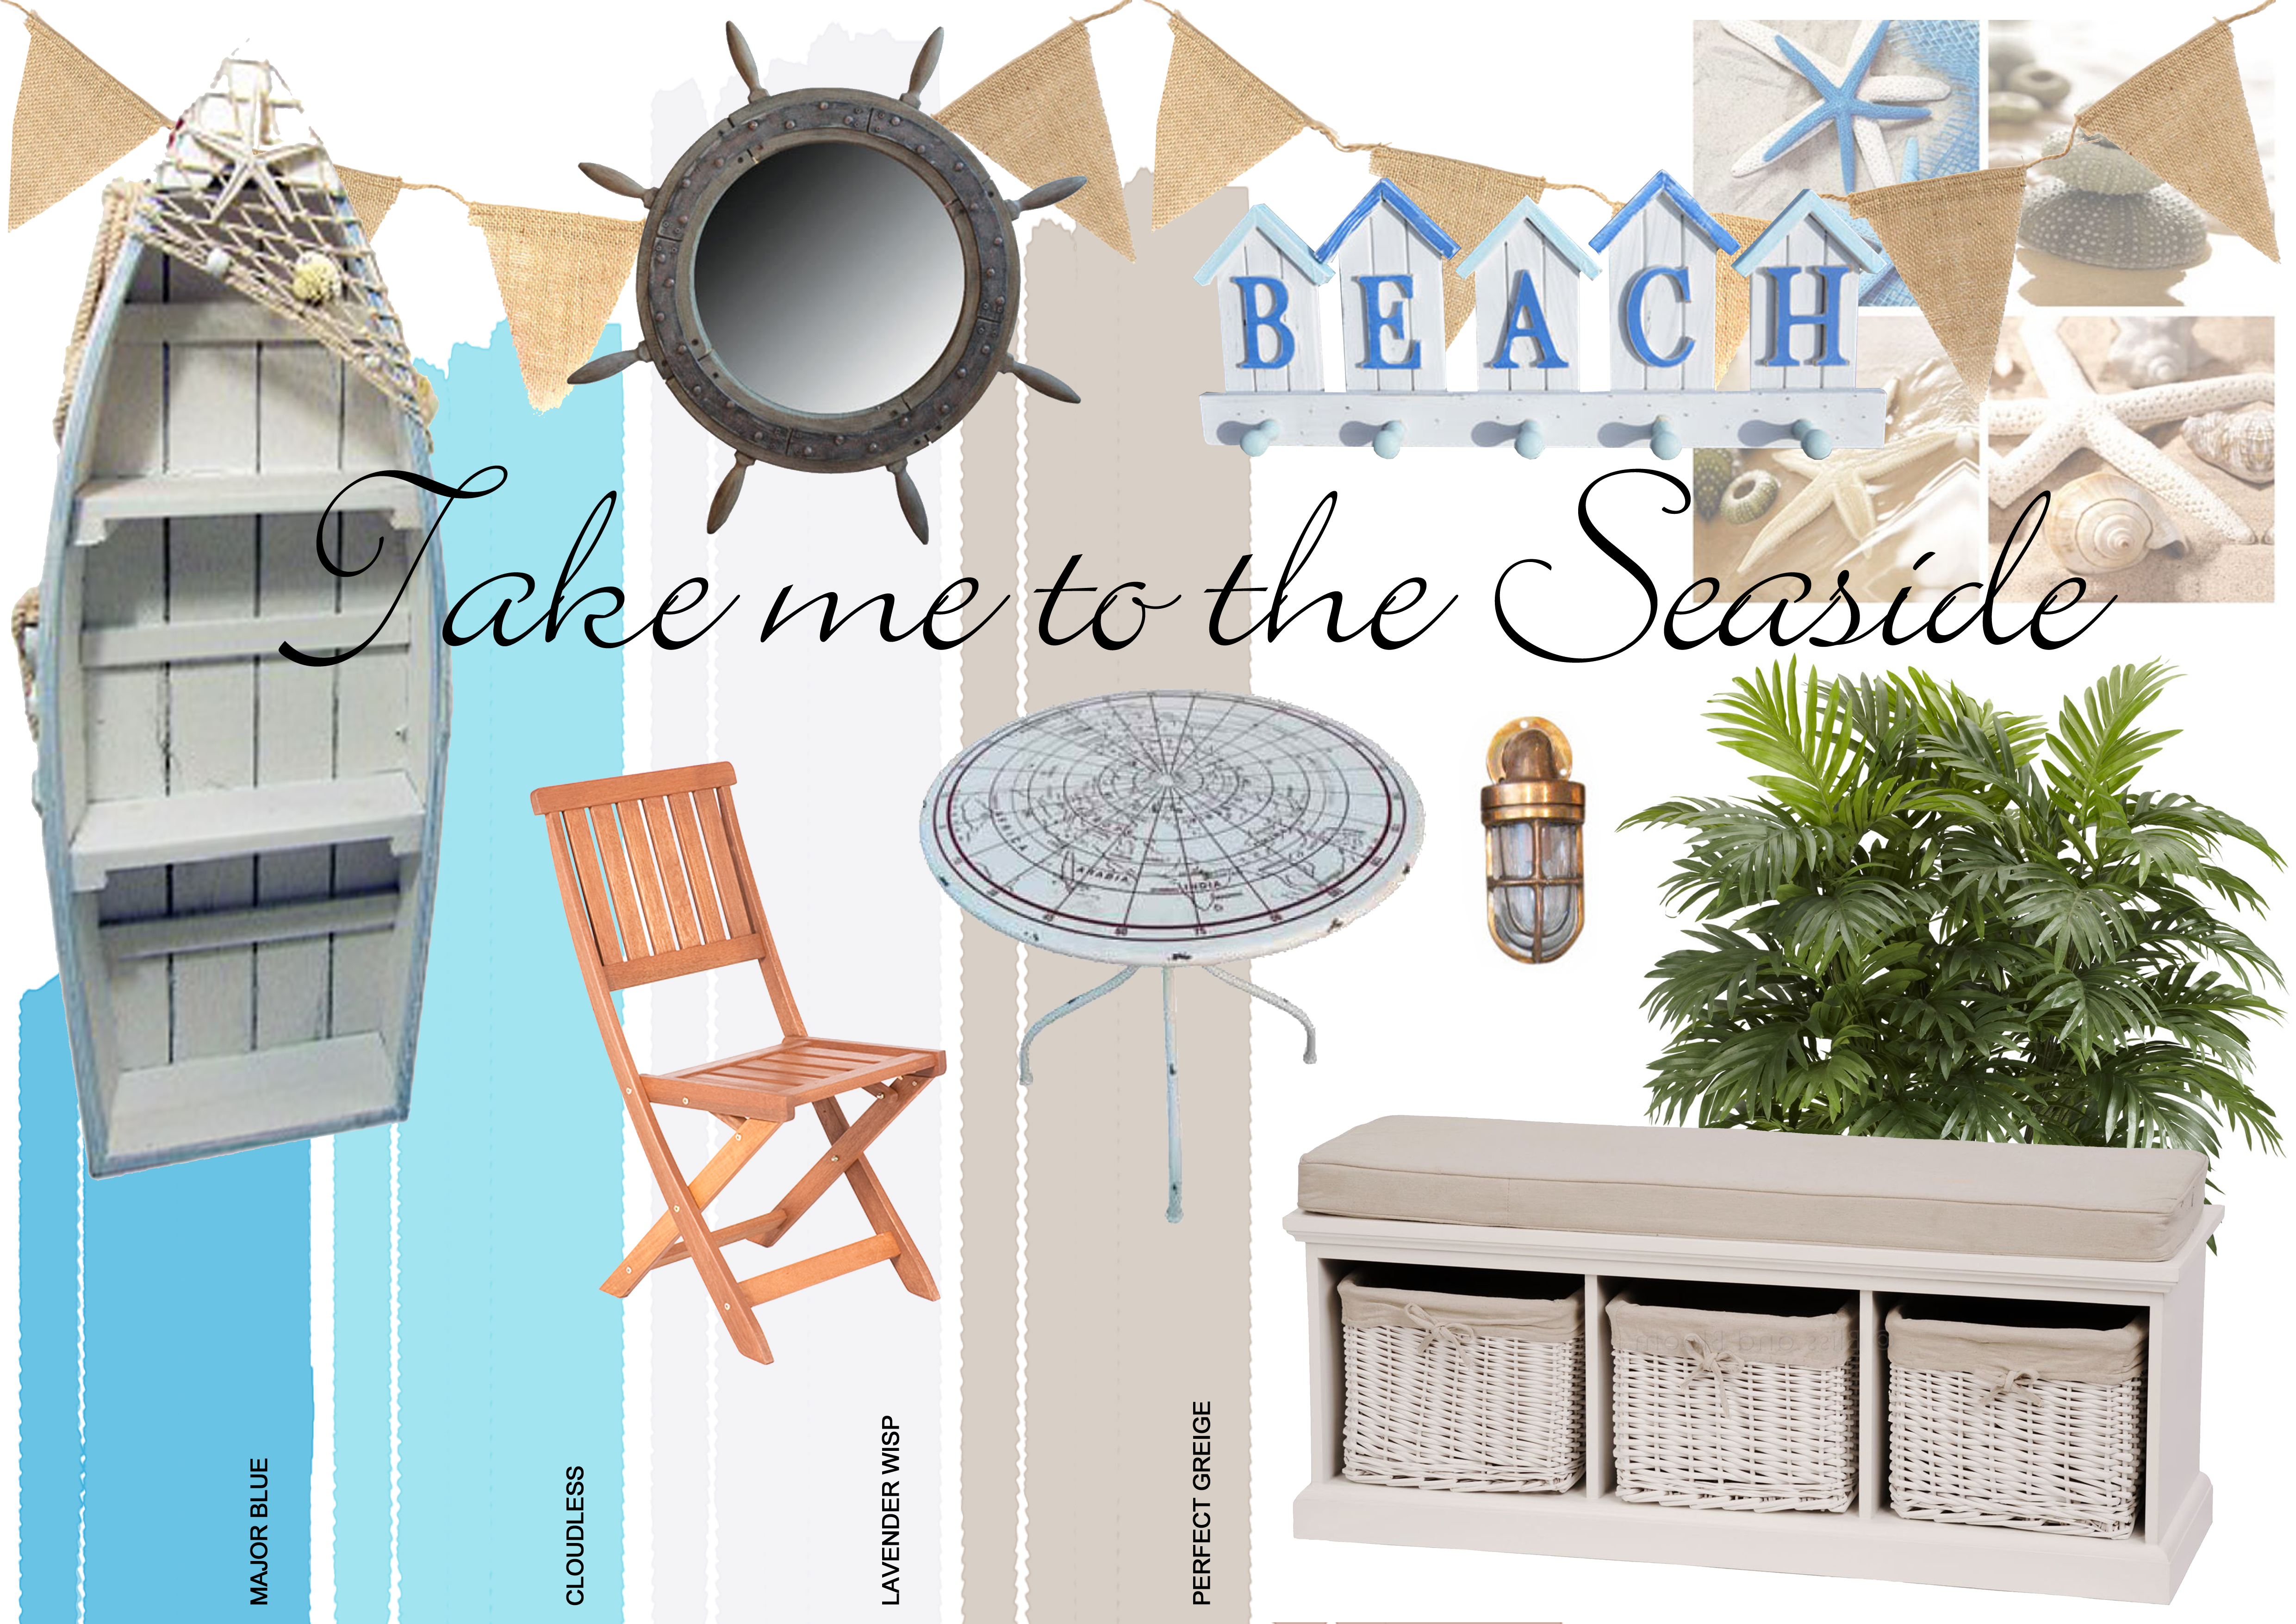 Inspired Interiors 2: Beach Hut